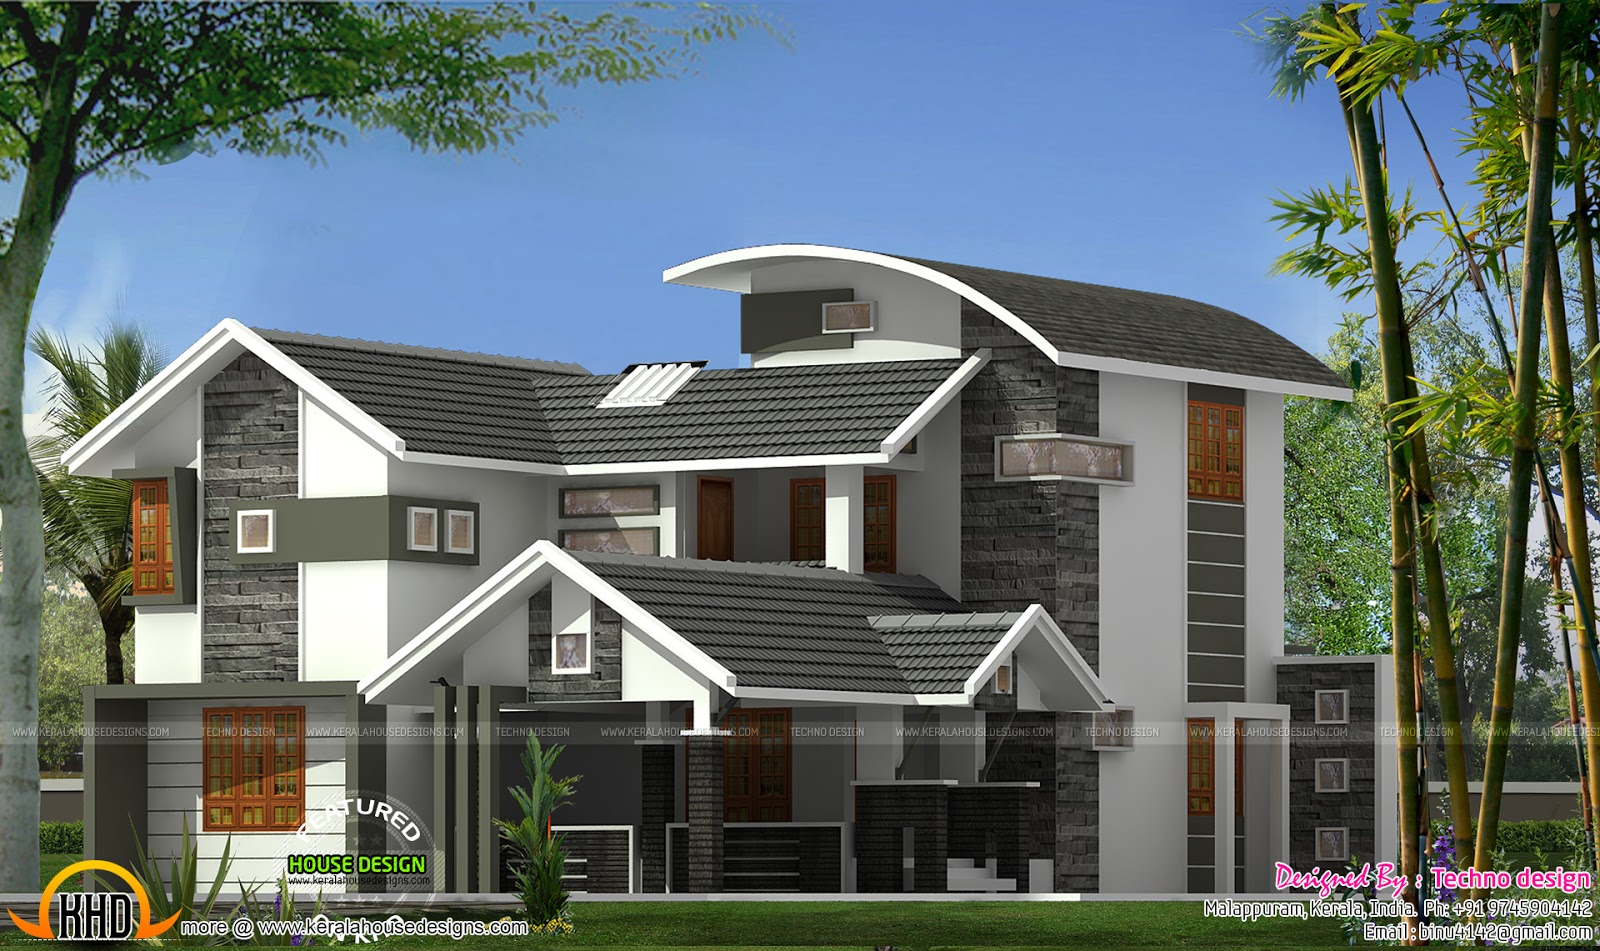 4 bedroom house in 2100 square feet kerala home design for 2100 sf house plans